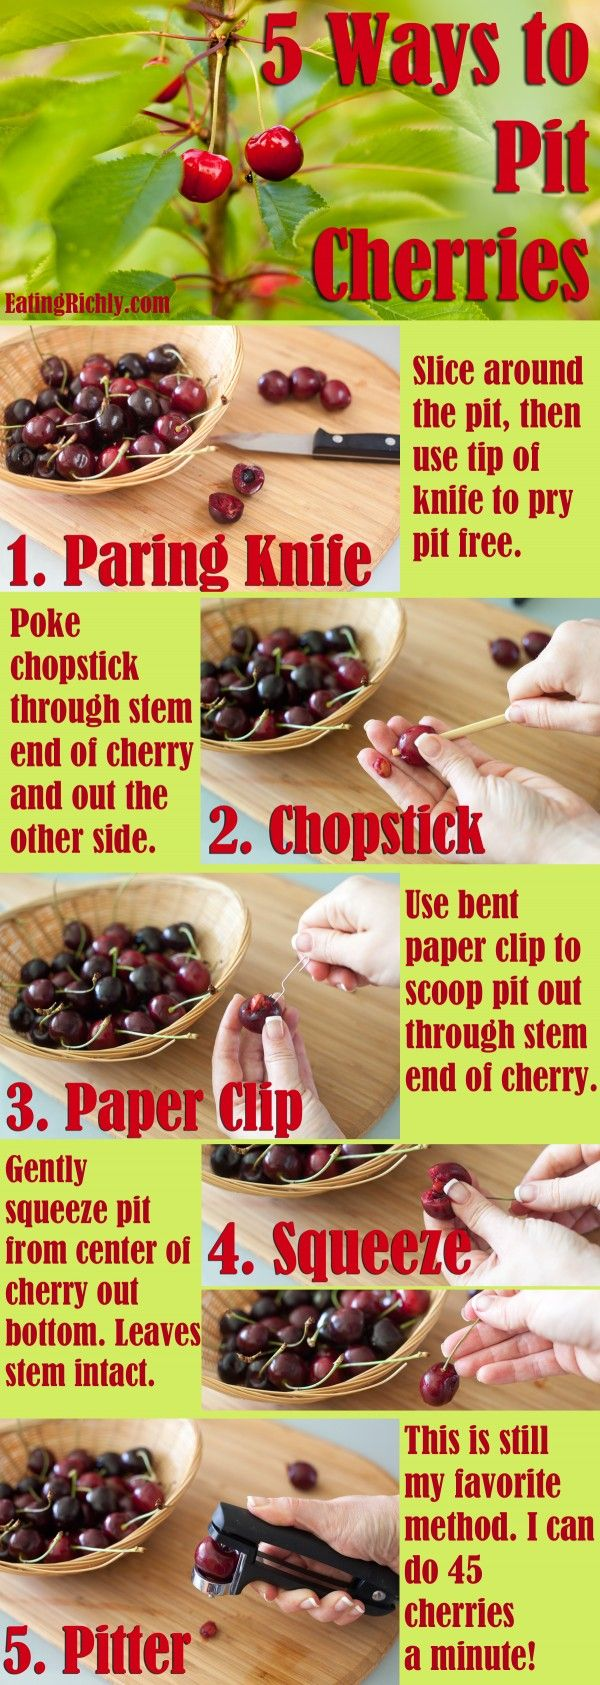 How to Pit Cherries (5 easy ways) by Eating Richly...  https://www.facebook.com/cherryfestival  #cherryfestival